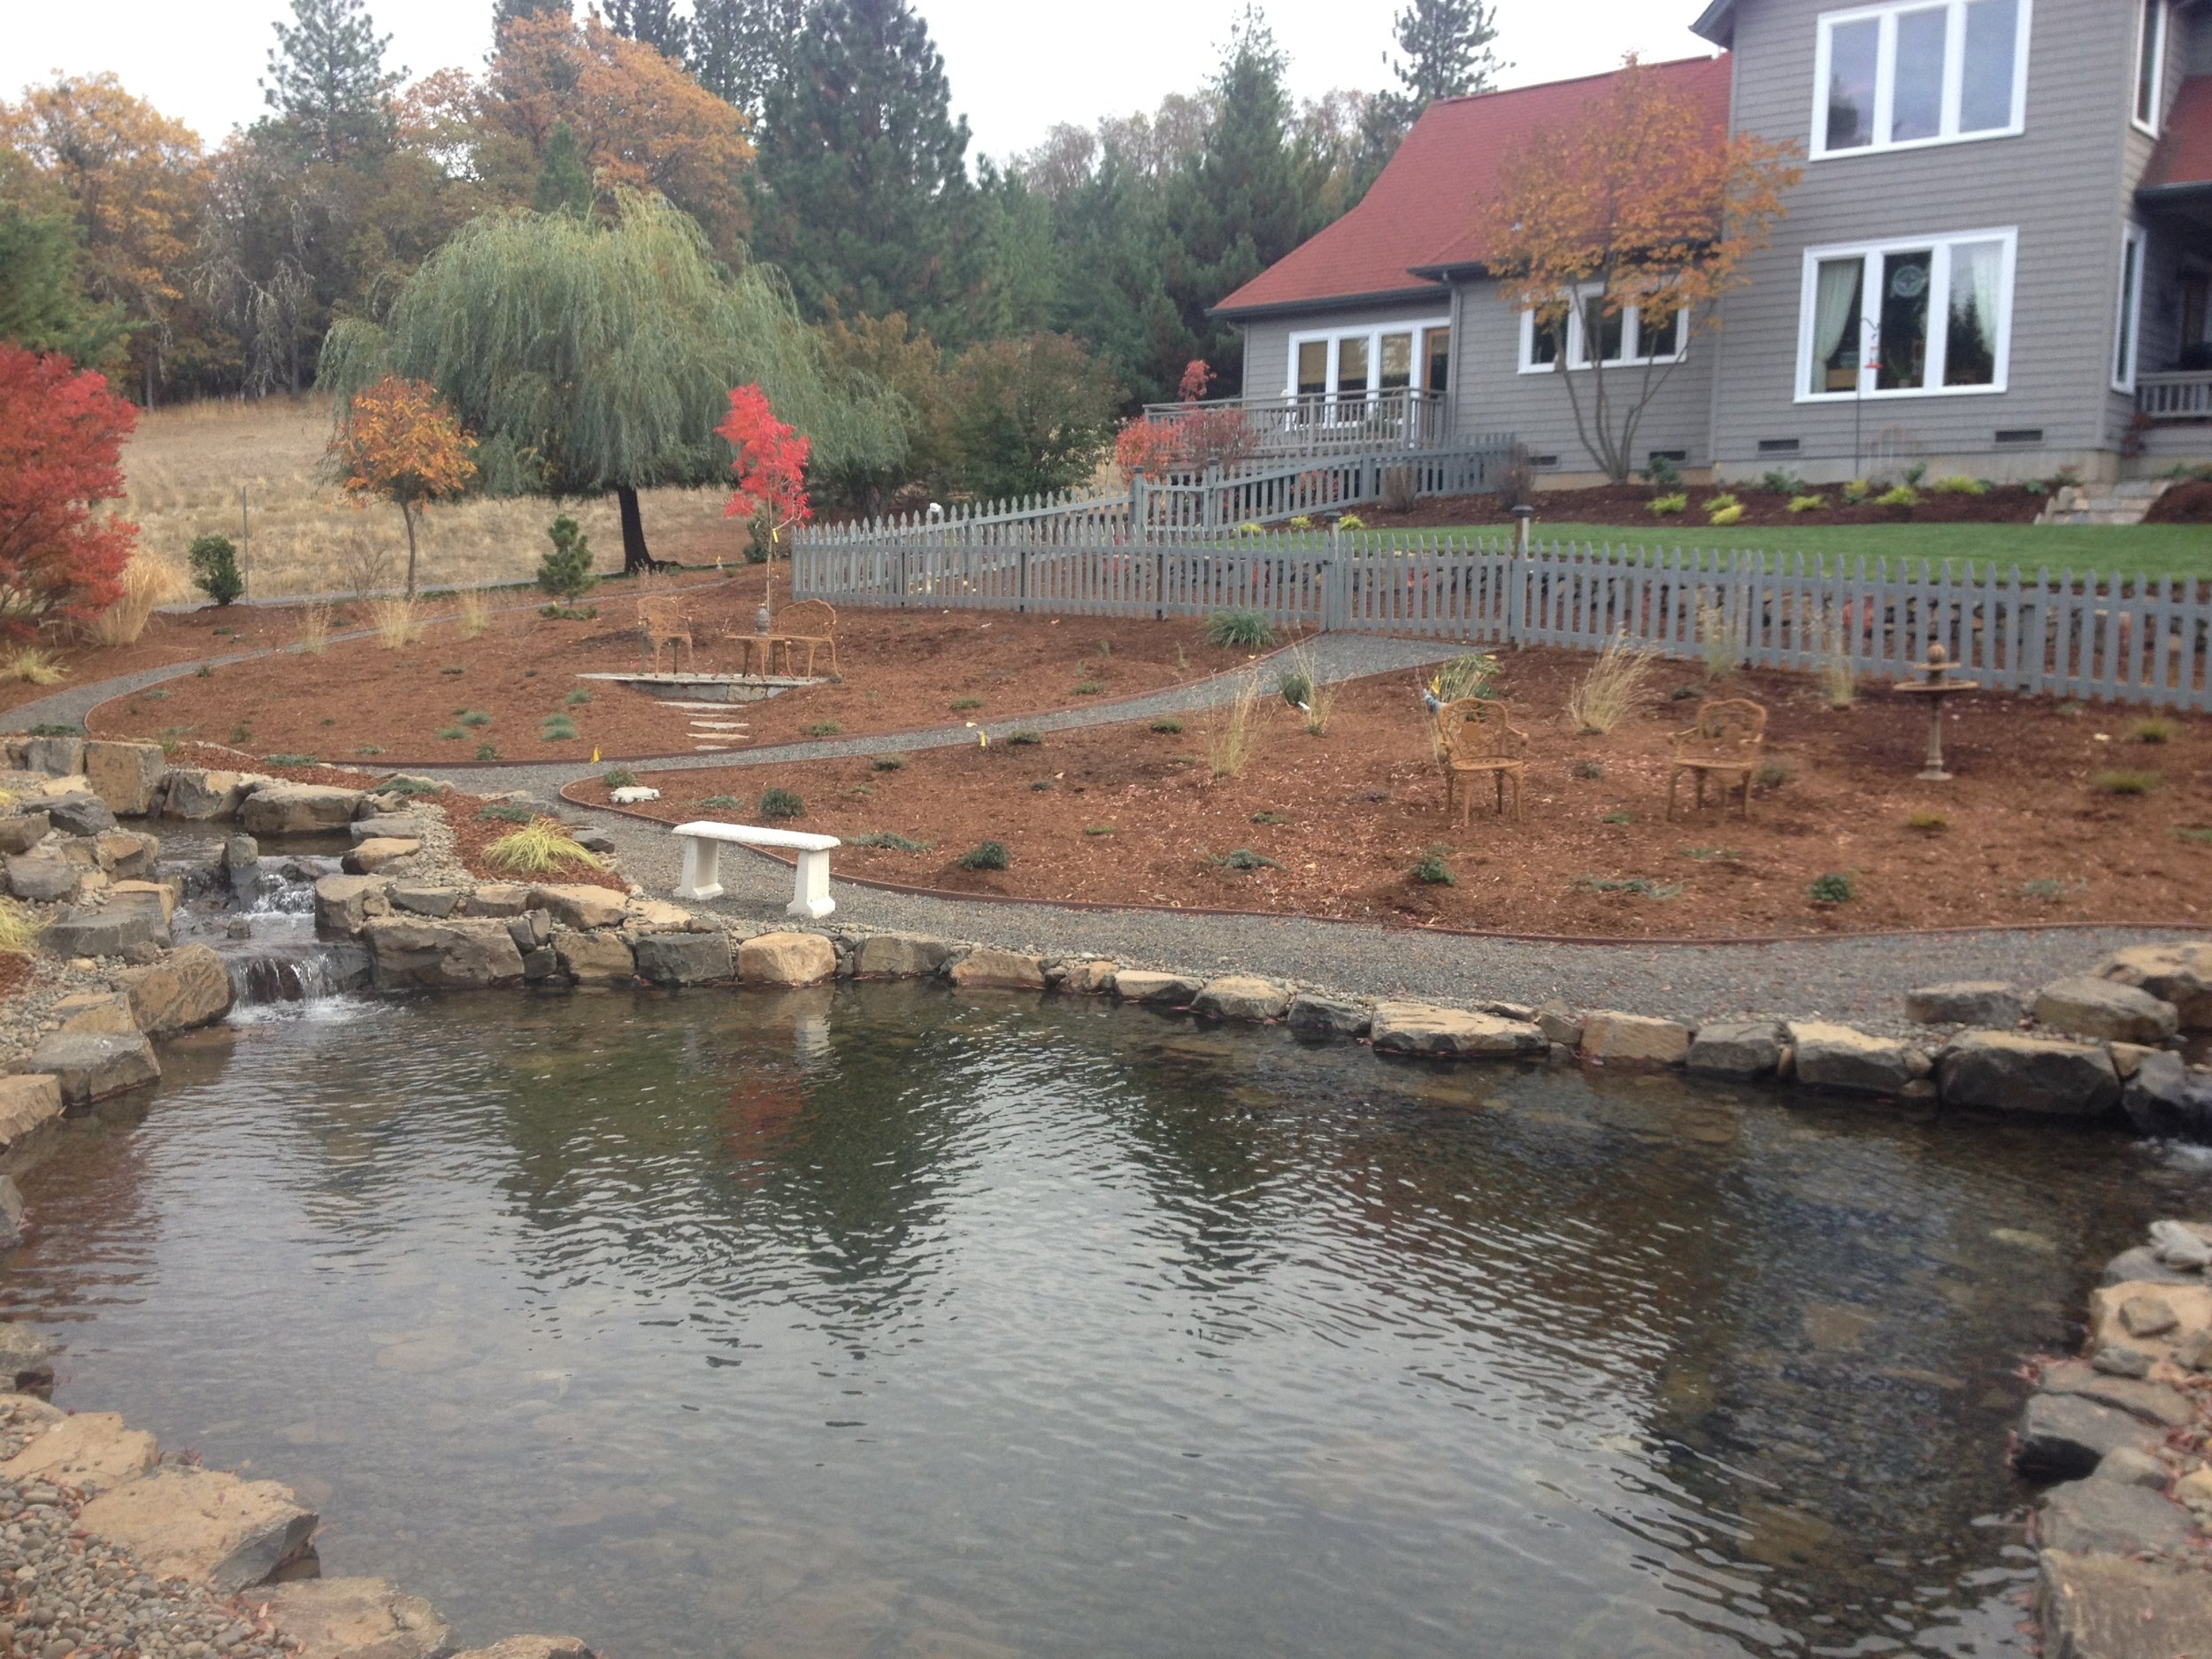 Water Features - From small ponds to waterfalls, we work with water to create soothing sounds, reduce noise pollution, clean the air, boost property value, and perhaps offer some koi fish a home.